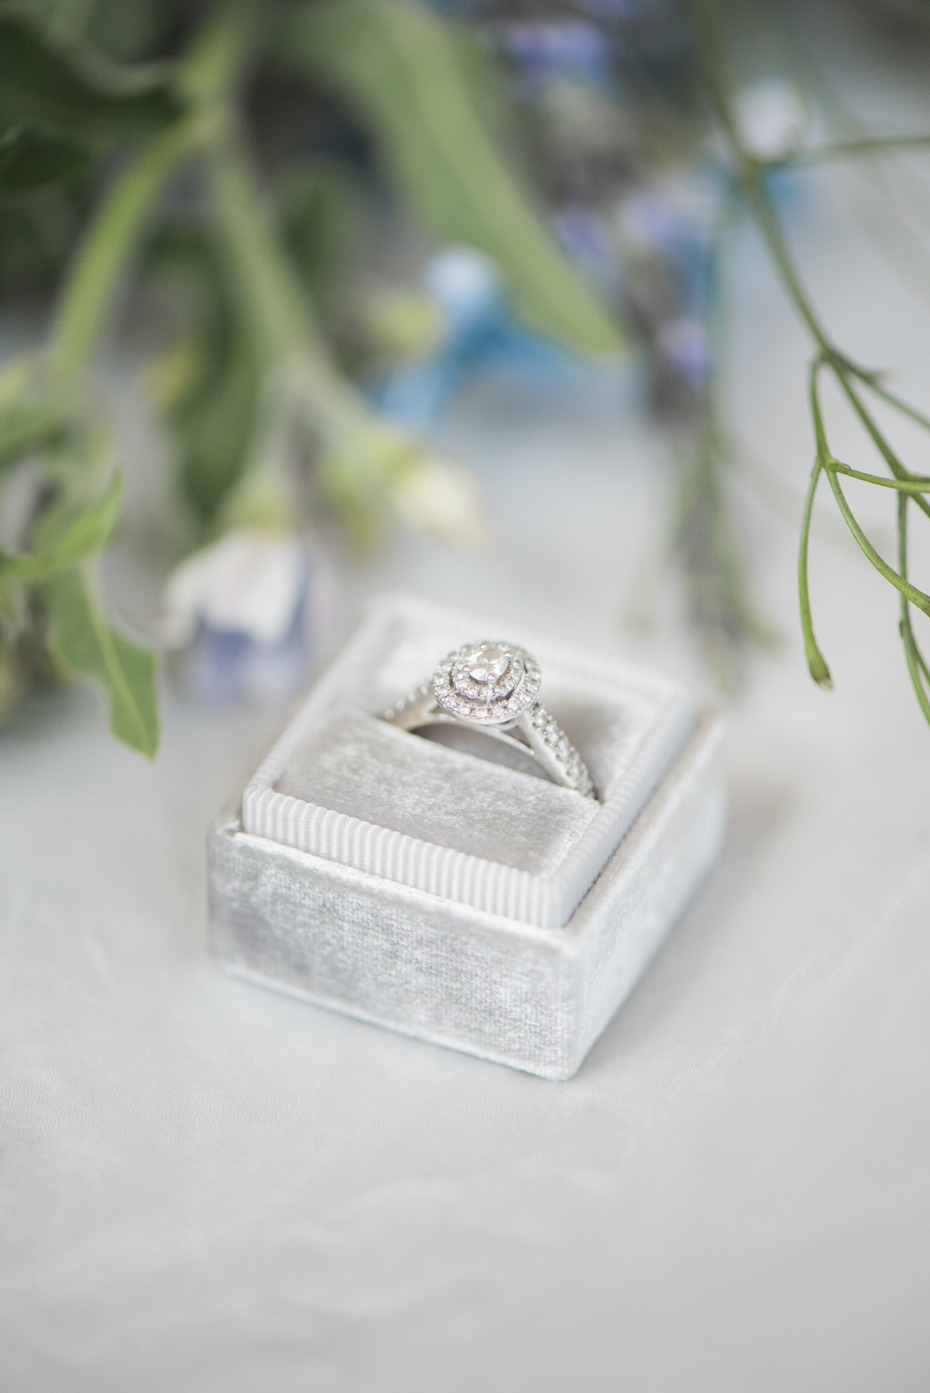 silver ring box with engagement ring